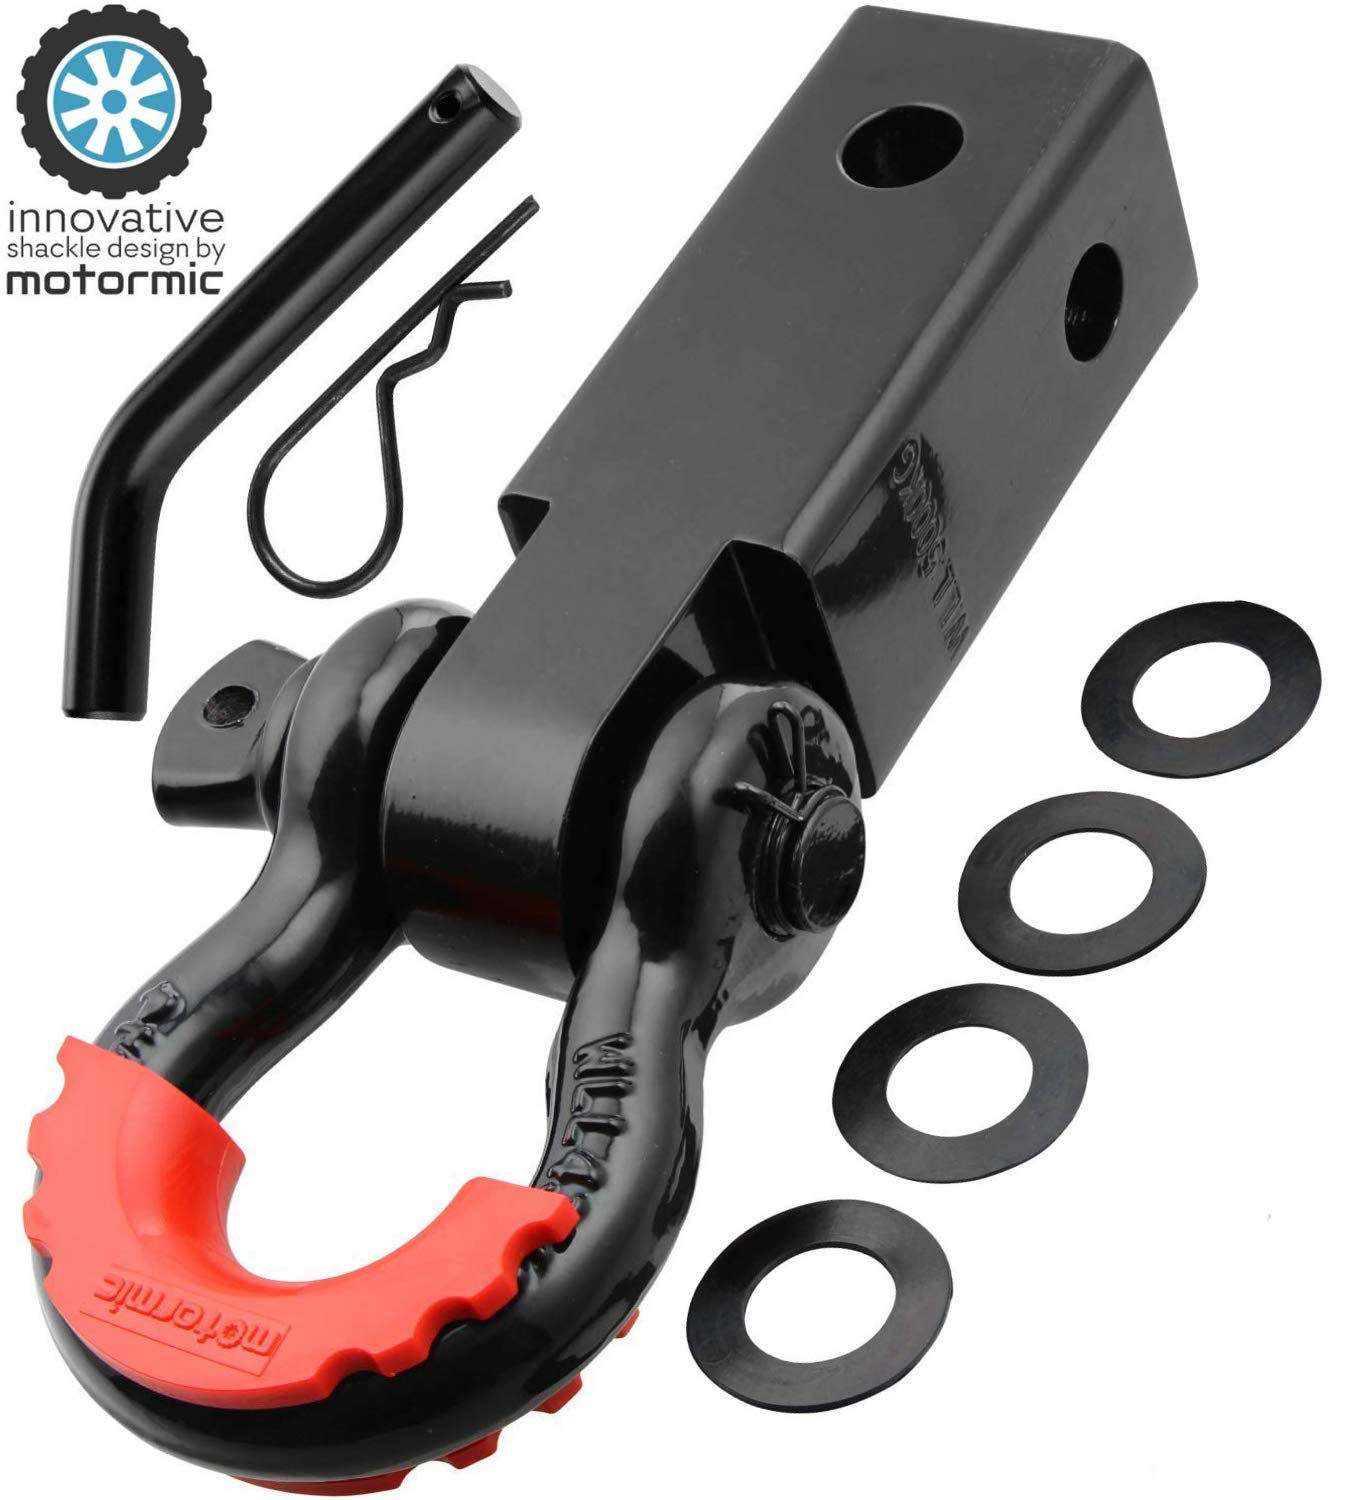 motormic Shackle Hitch Receiver 2'' (35,000 lbs Max Capacity) with 3/4'' D Ring and 7/8'' Screw Pin Safety Ring - Includes 1 Black Bent Pin, 4 Rubber Washers and 1 Red Isolator by motormic